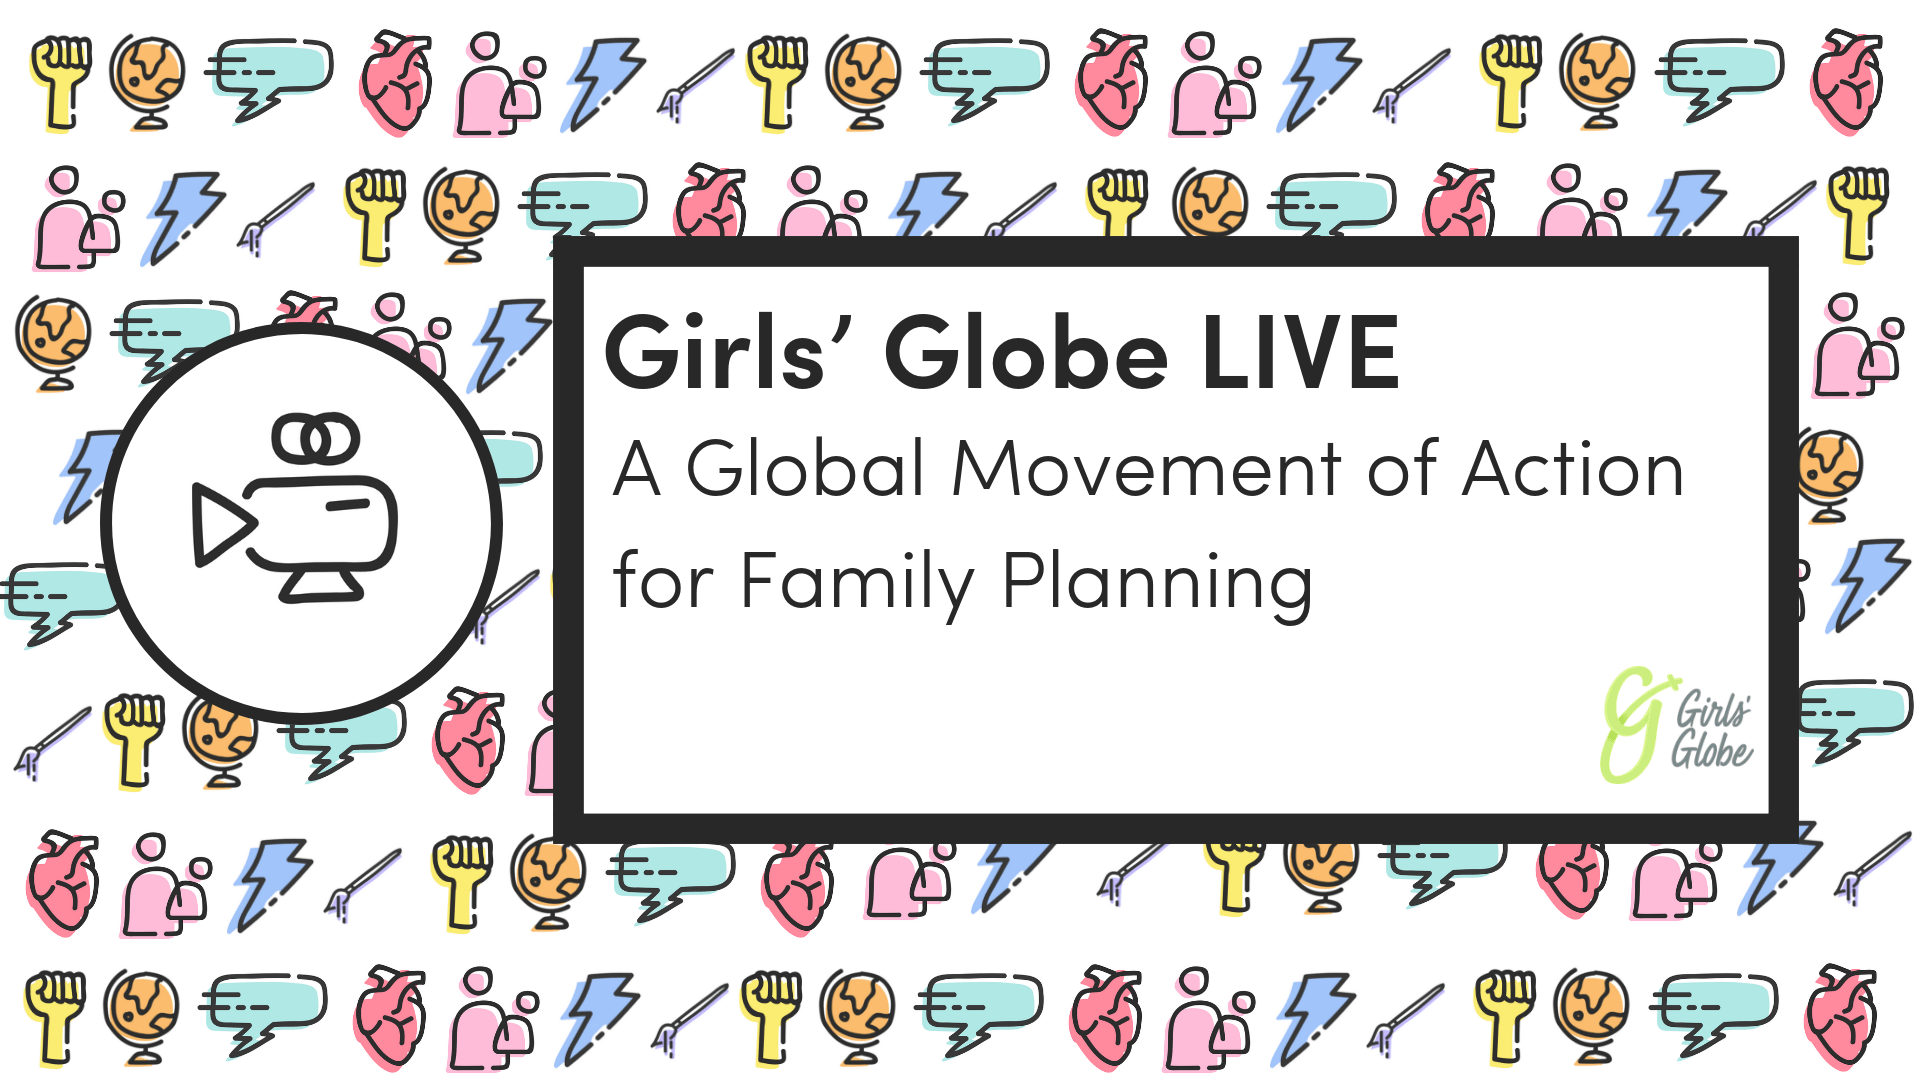 Watch Girls' Globe LIVE on Facebook